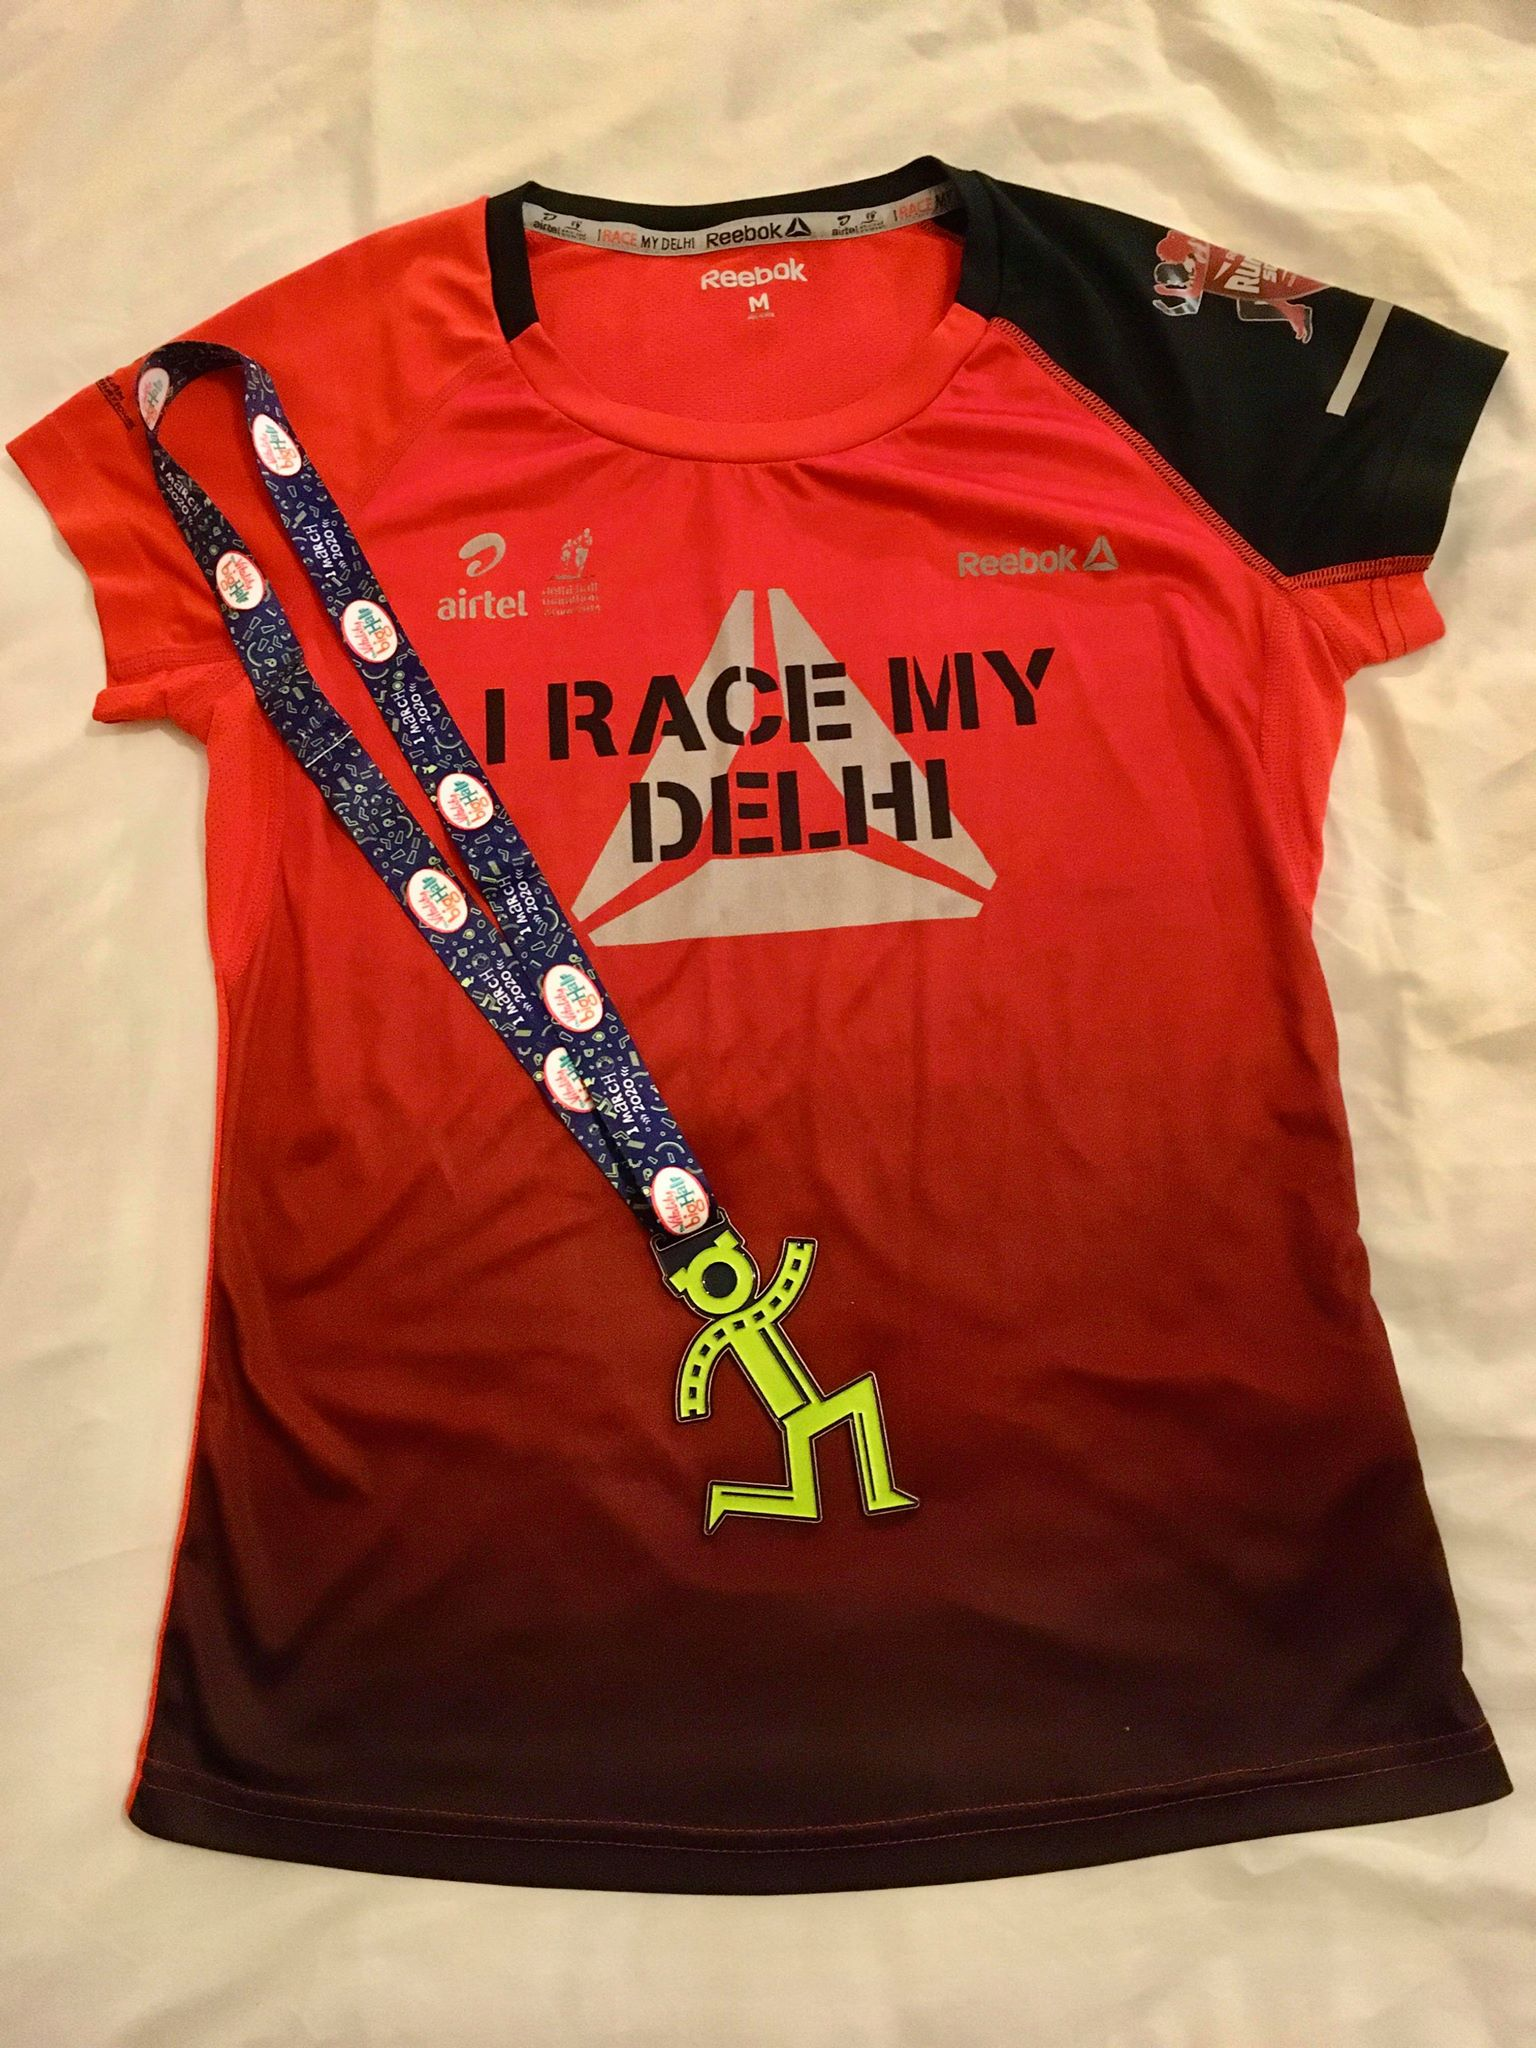 A half marathon PB!  And emotional tears for Delhi